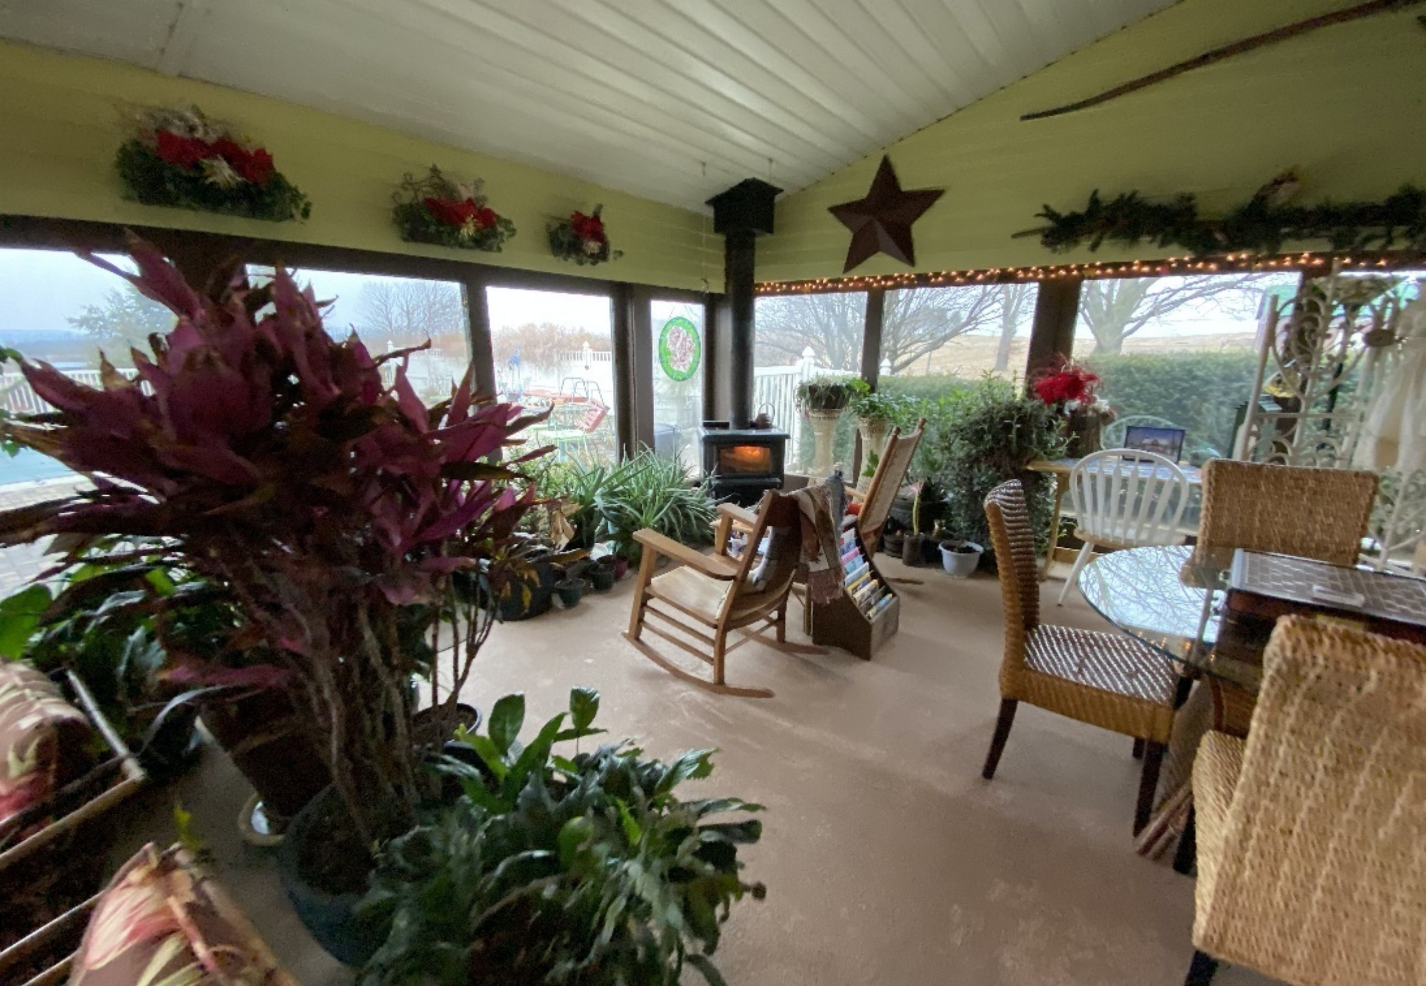 Garden Room with big windows on all sides, fire in fireplace.